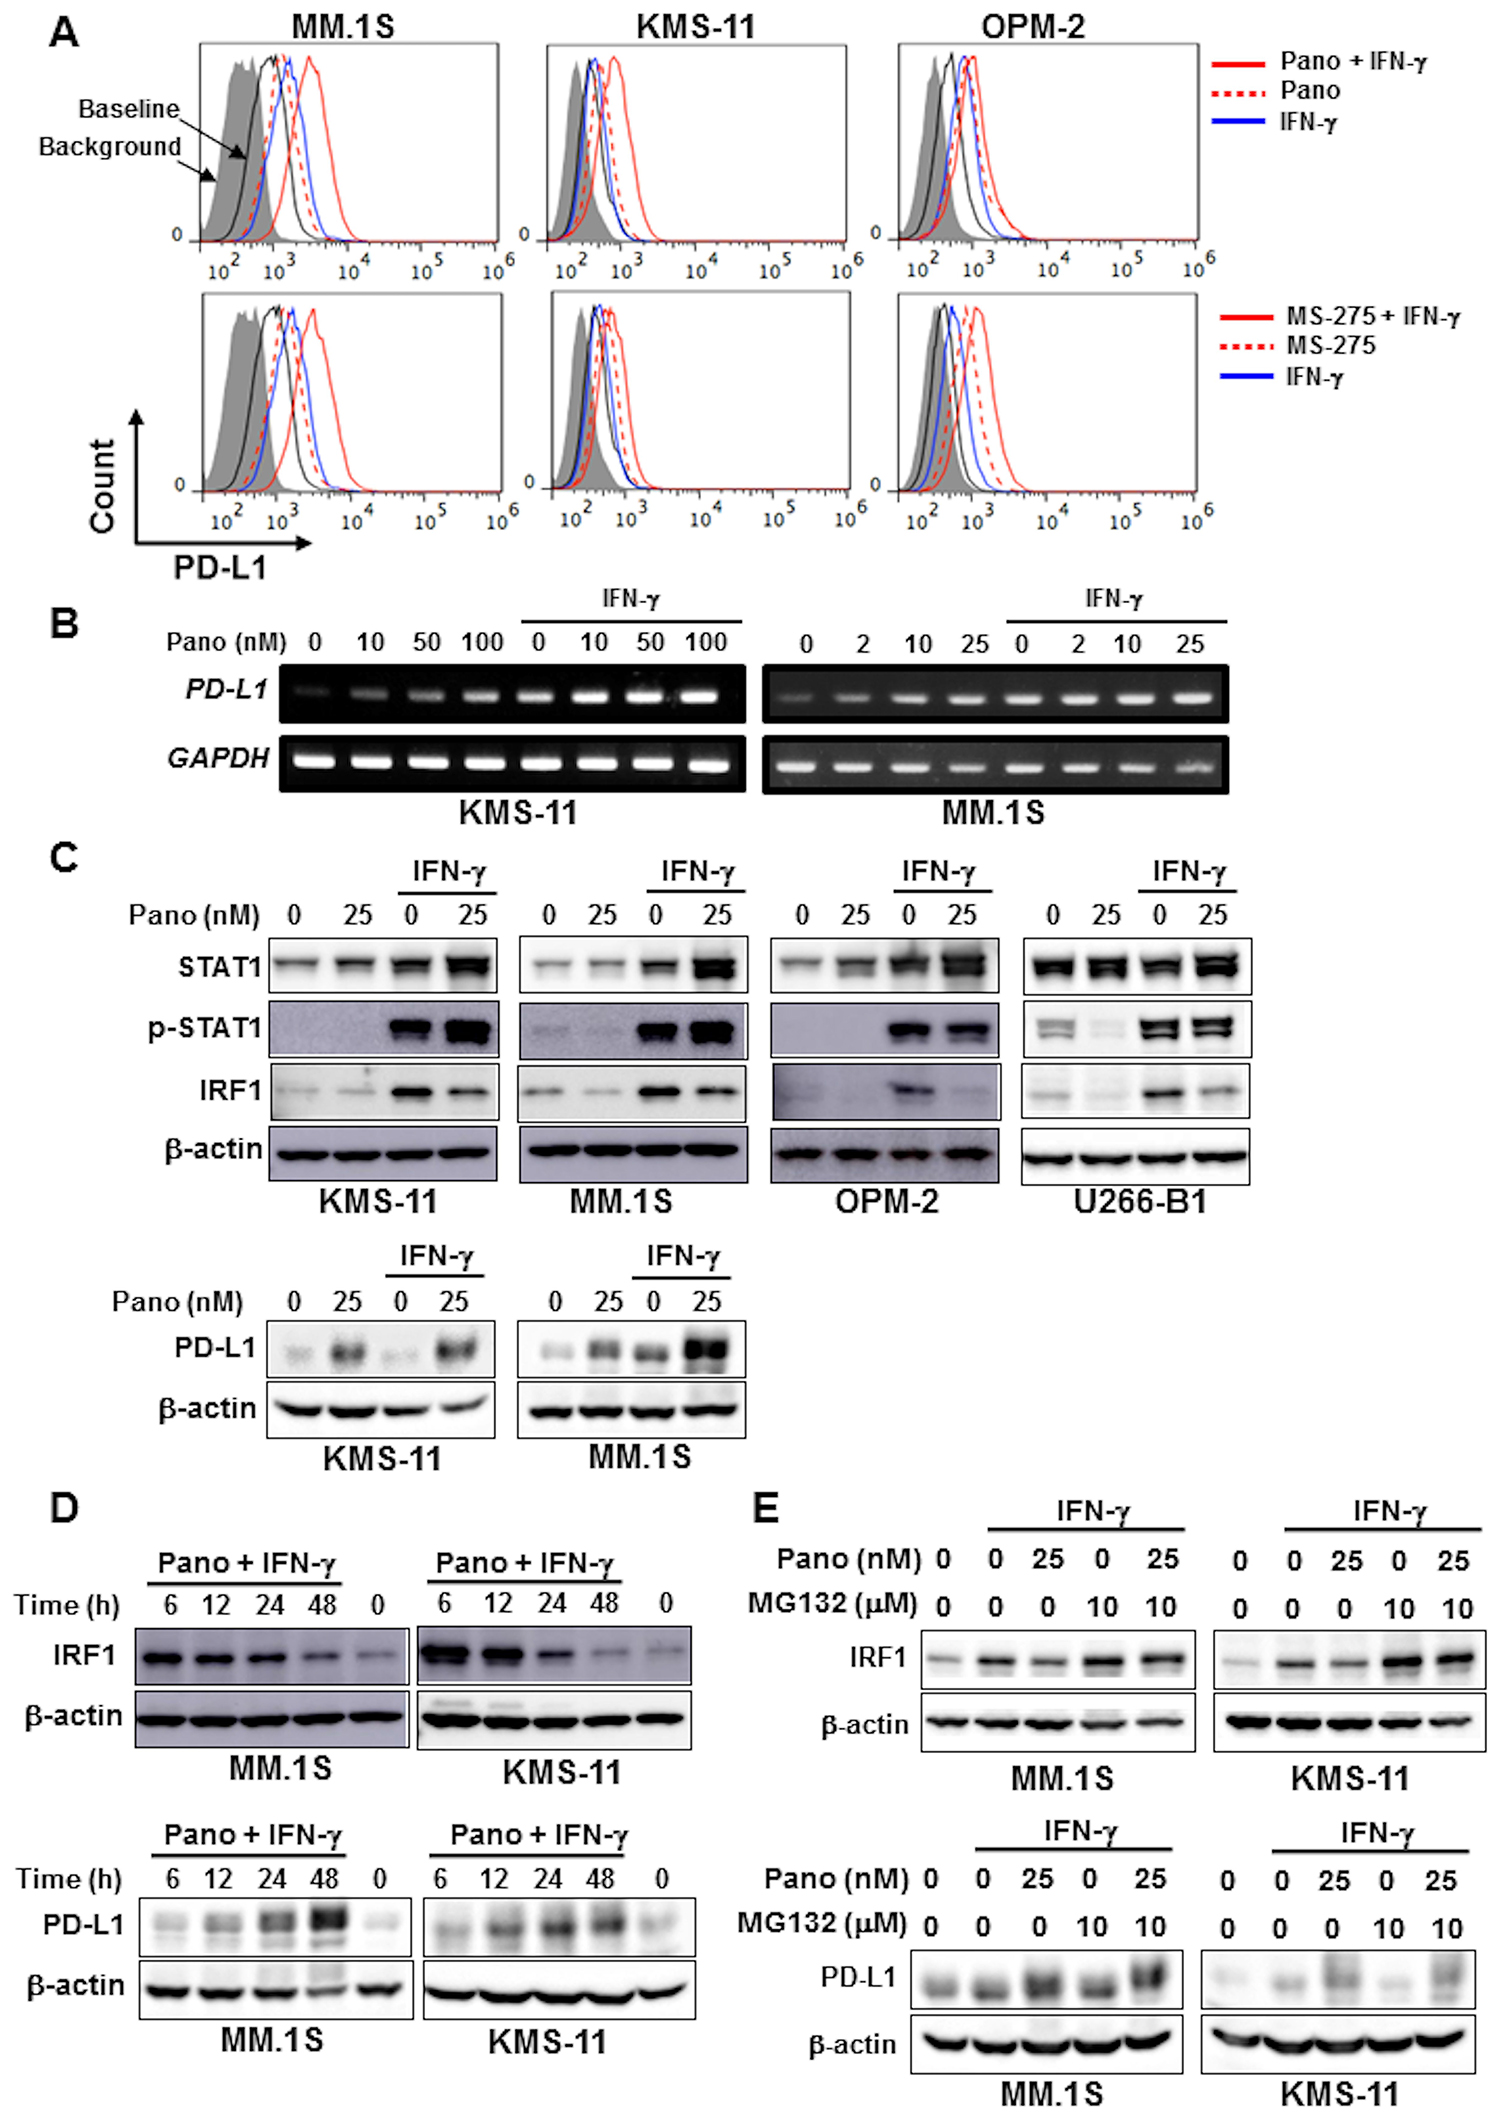 HDAC inhibition upregulates PD-L1 expression by MM cells in combination with IFN-γ.